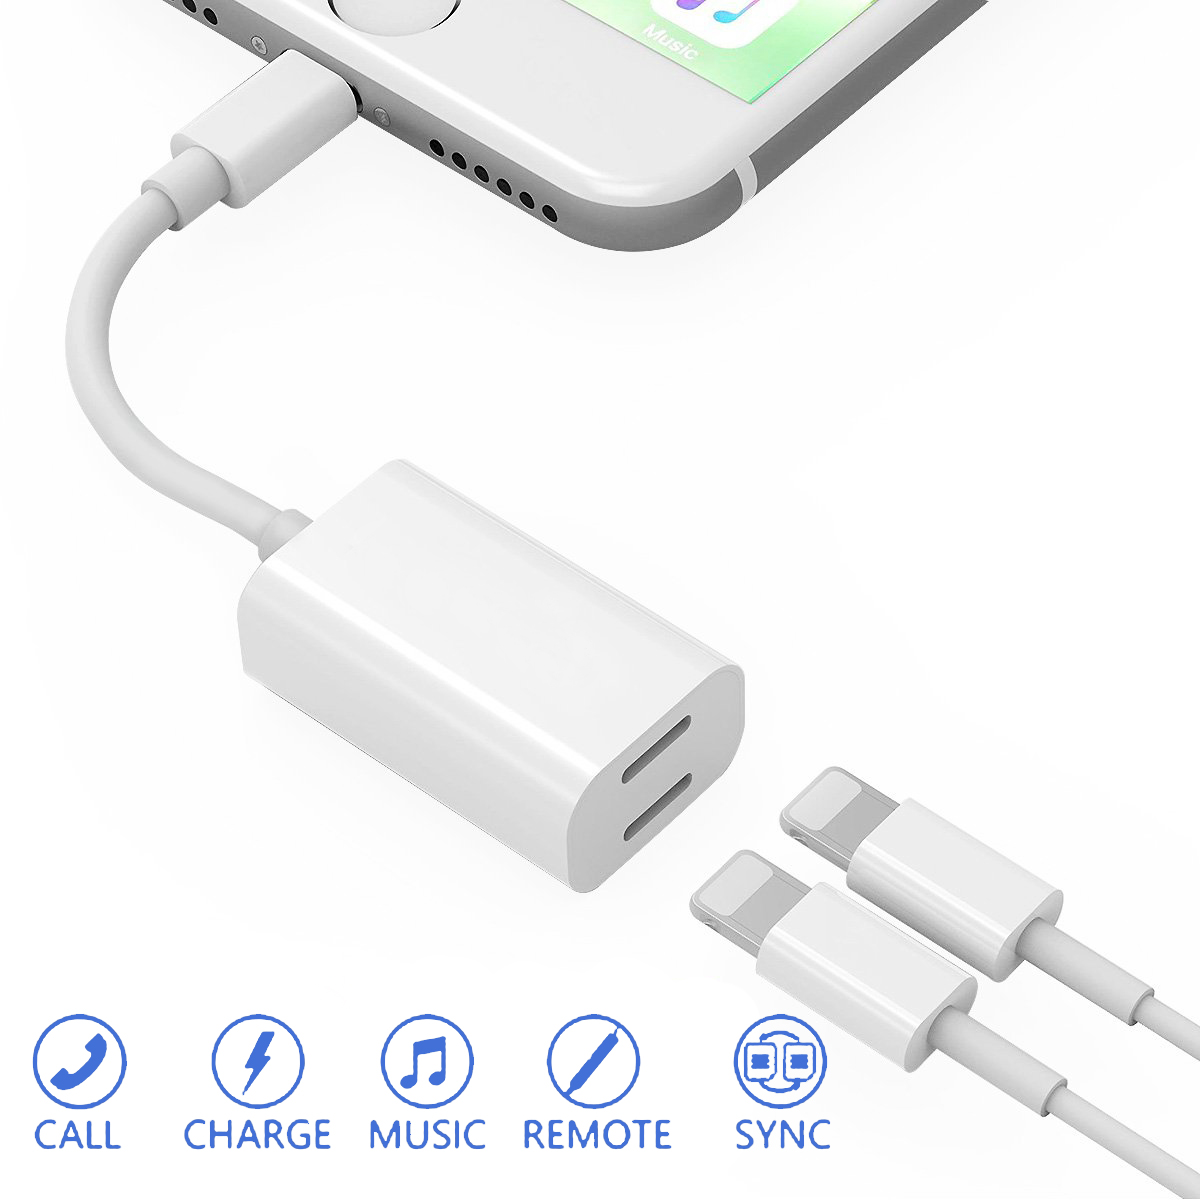 iPhone 7/8/X Headphone AUX Adapter Dual Charger For Apple iPhone7/7 Plus lightning Adapter Audio Music Play 2in1 splitter Converter Earphone Headphone music Play Quick Charging USB cable